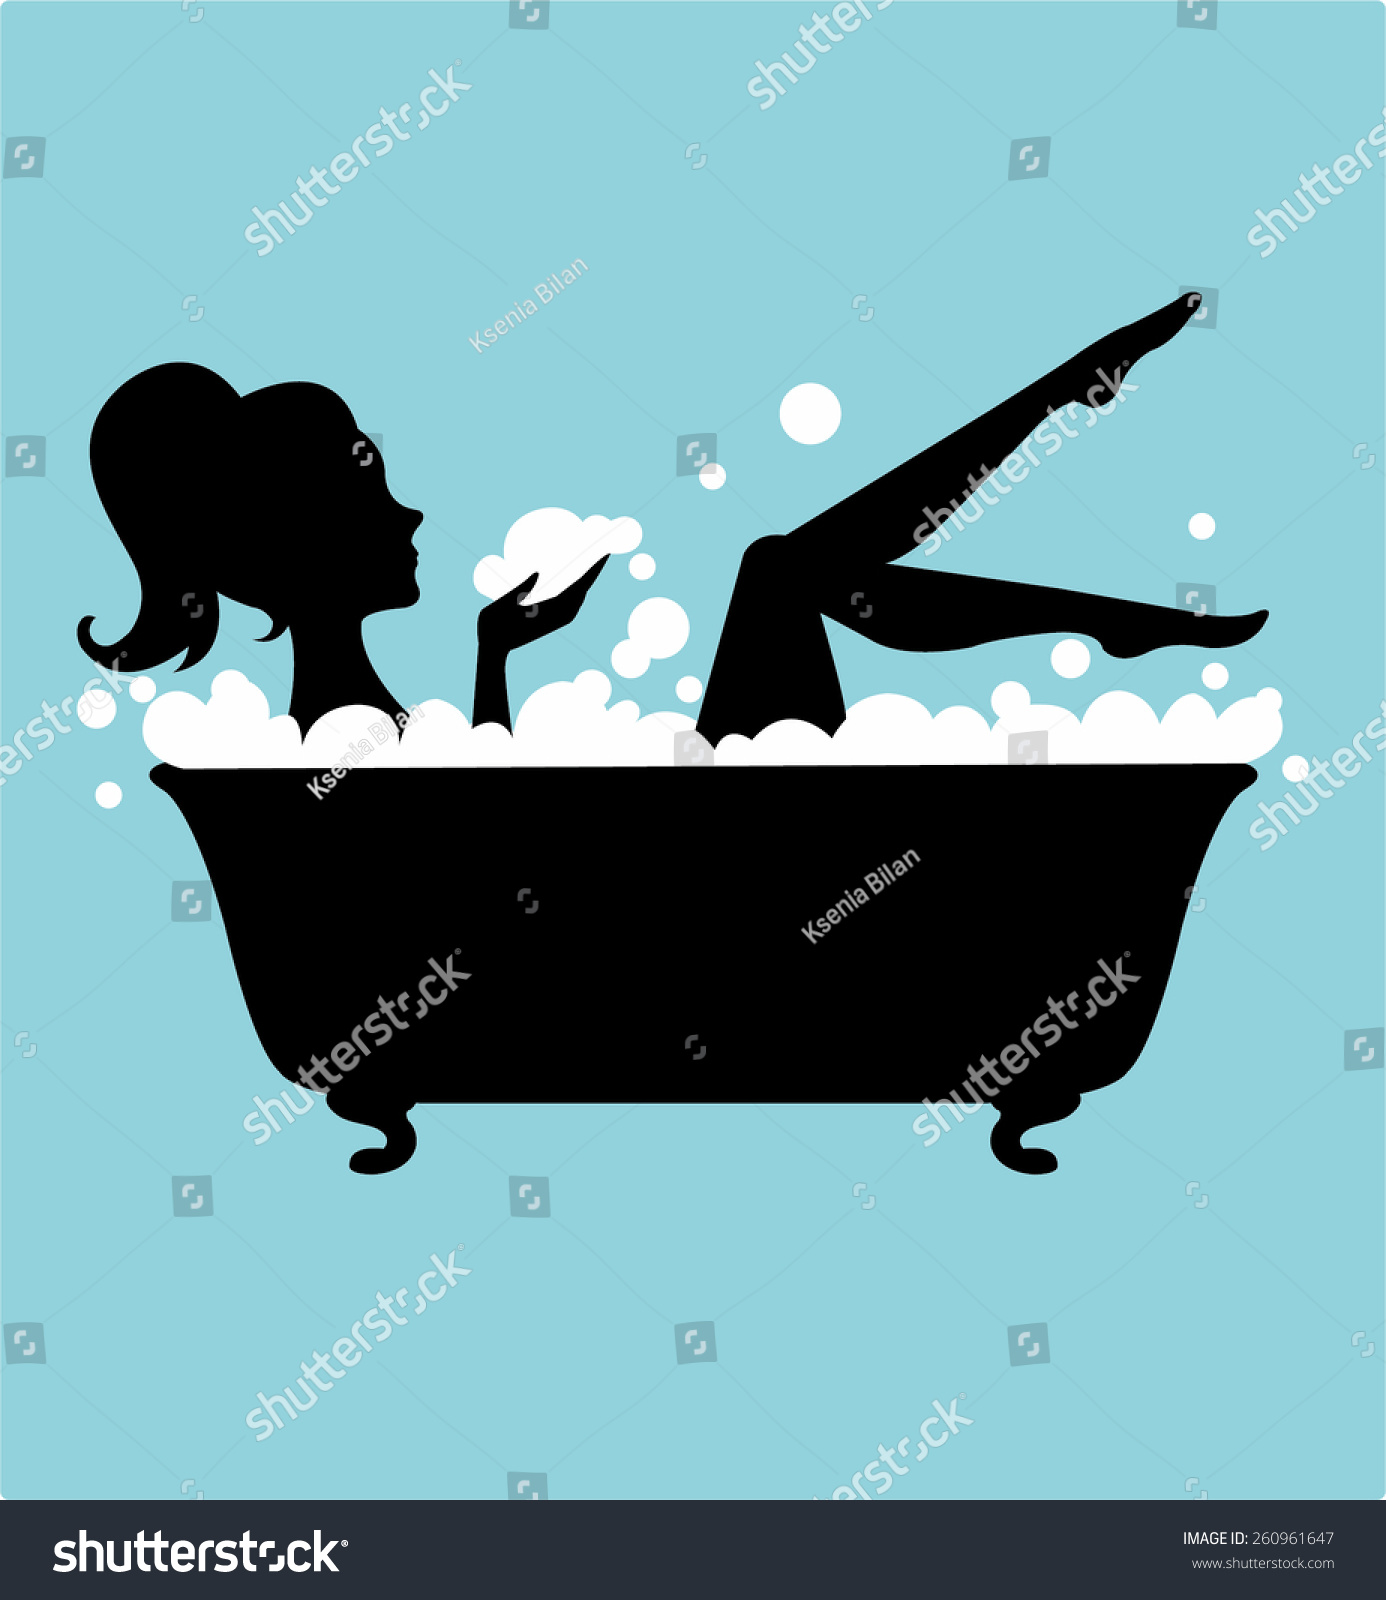 Woman In Bathtub Silhouette Stock Vector Illustration